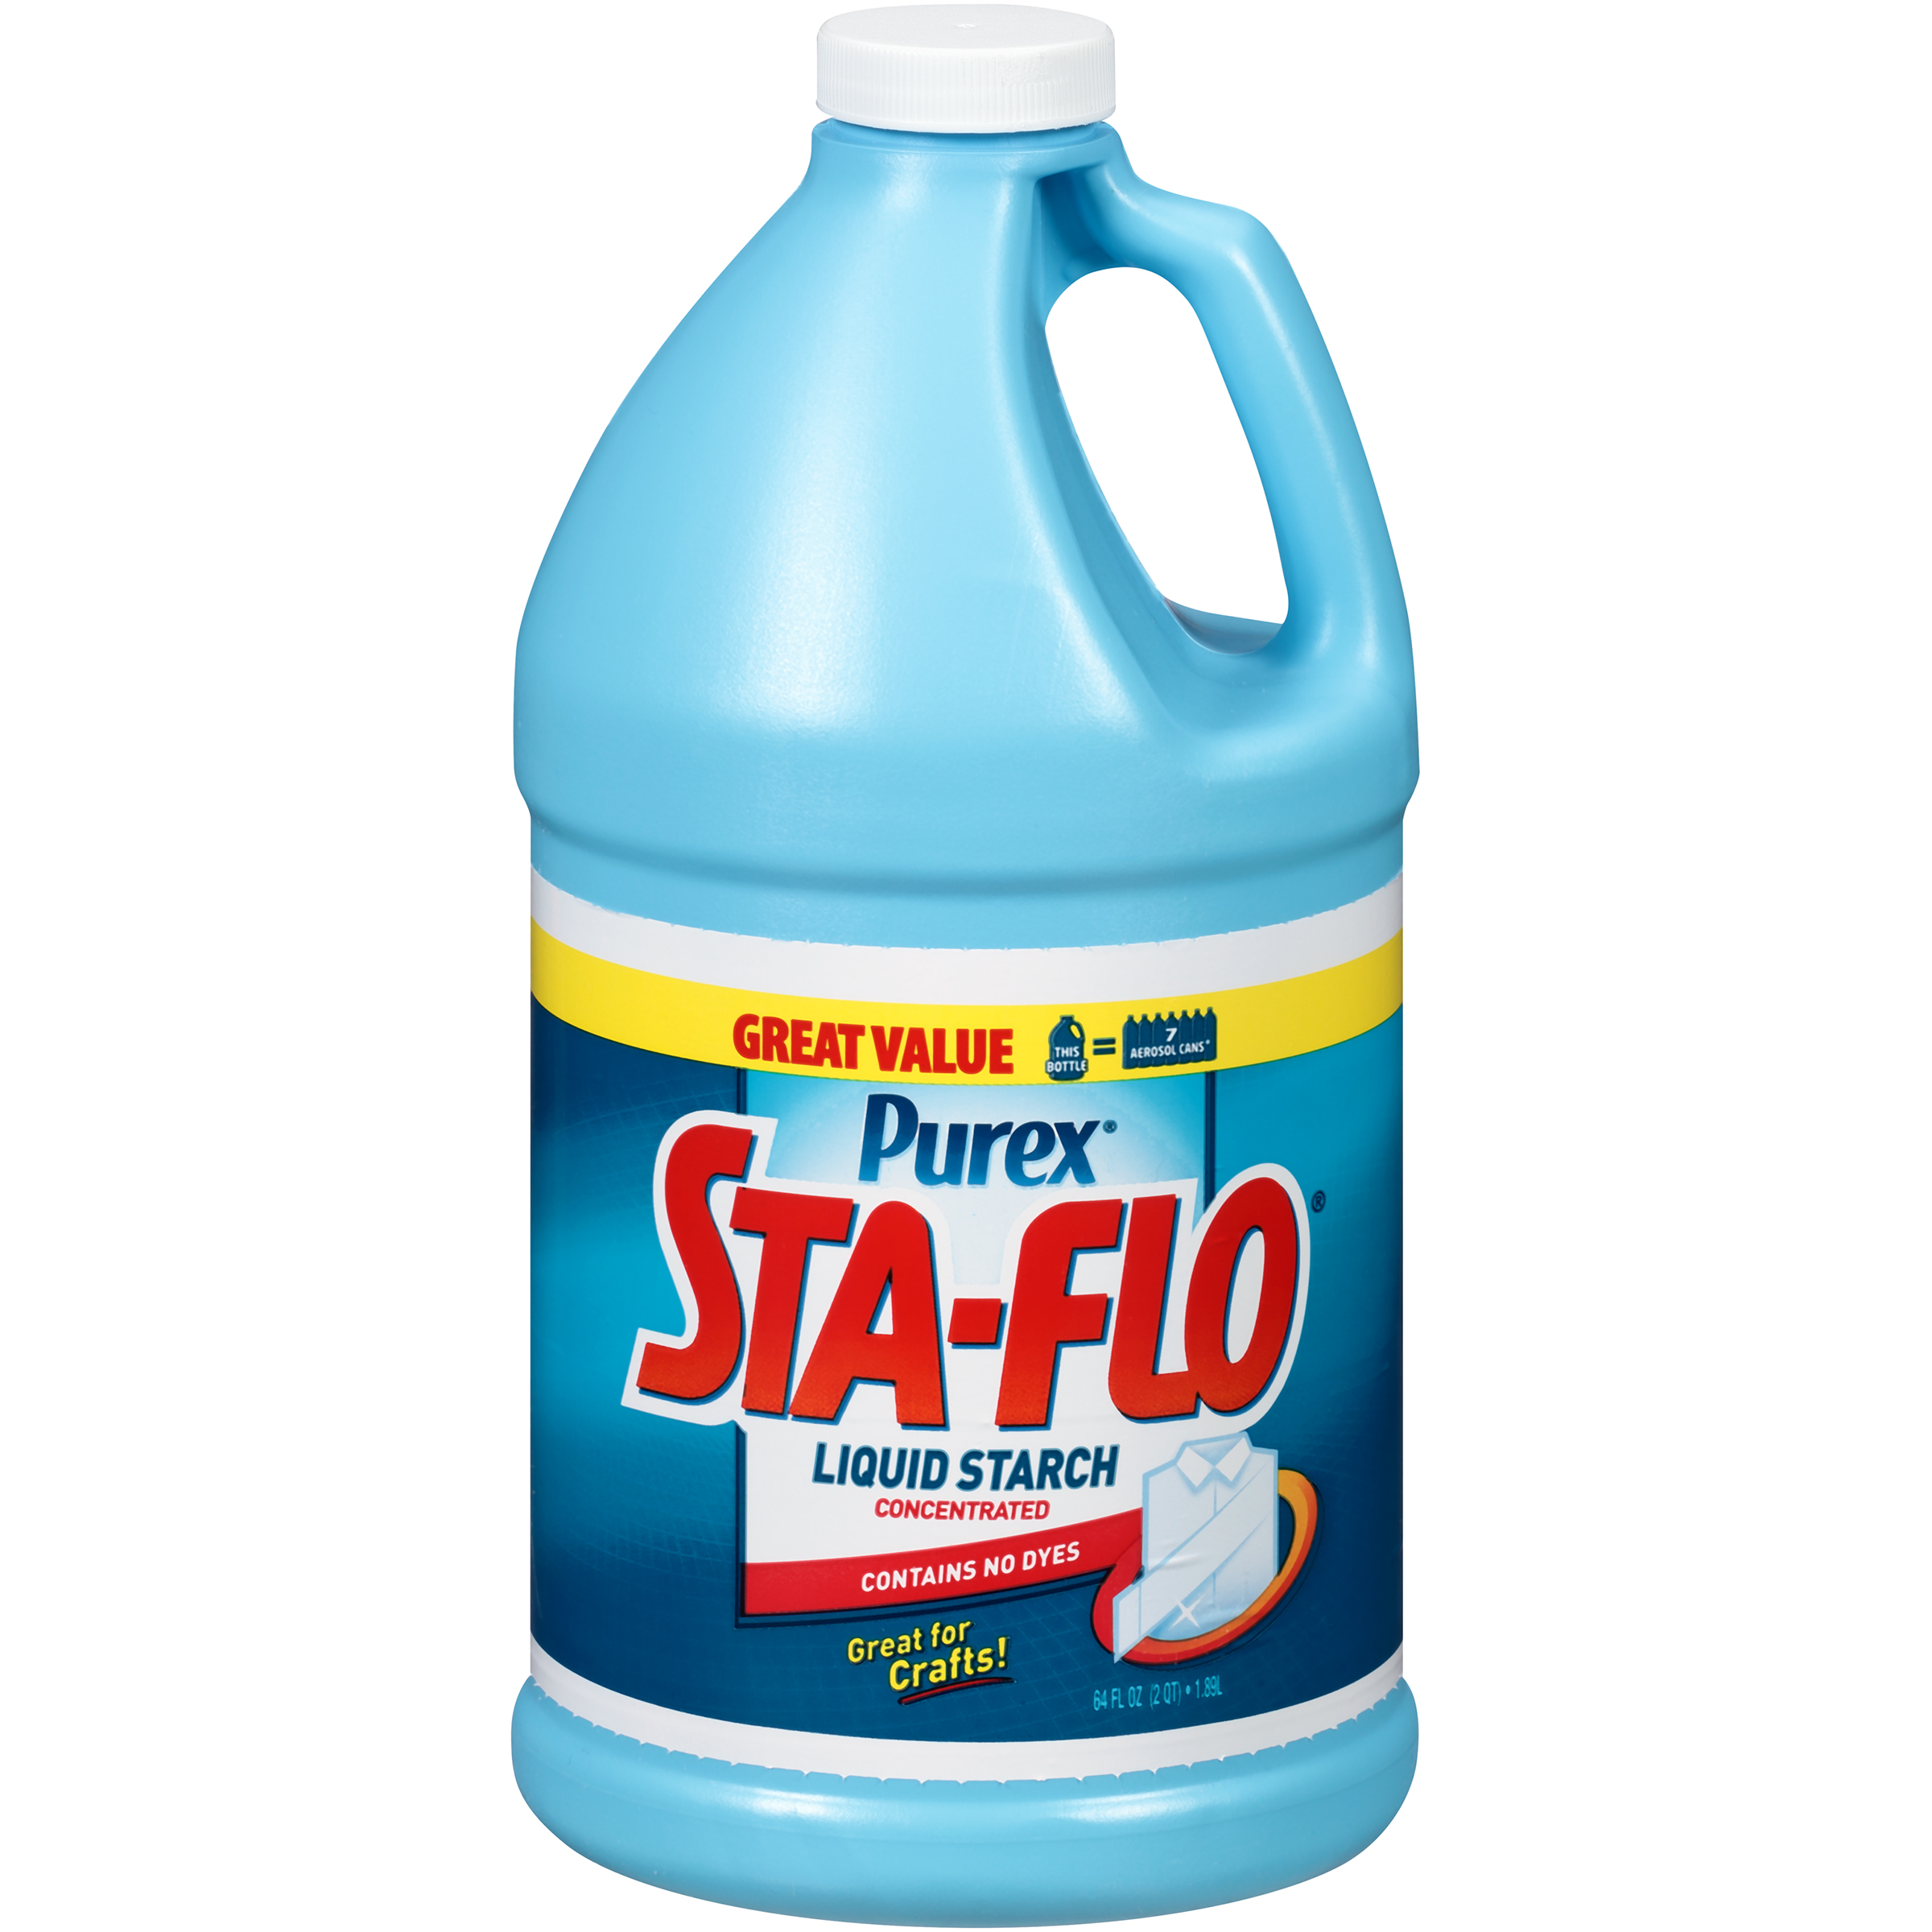 Purex Sta Flo Liquid Starch, Great for Crafts, Concentrated, 64 Ounce